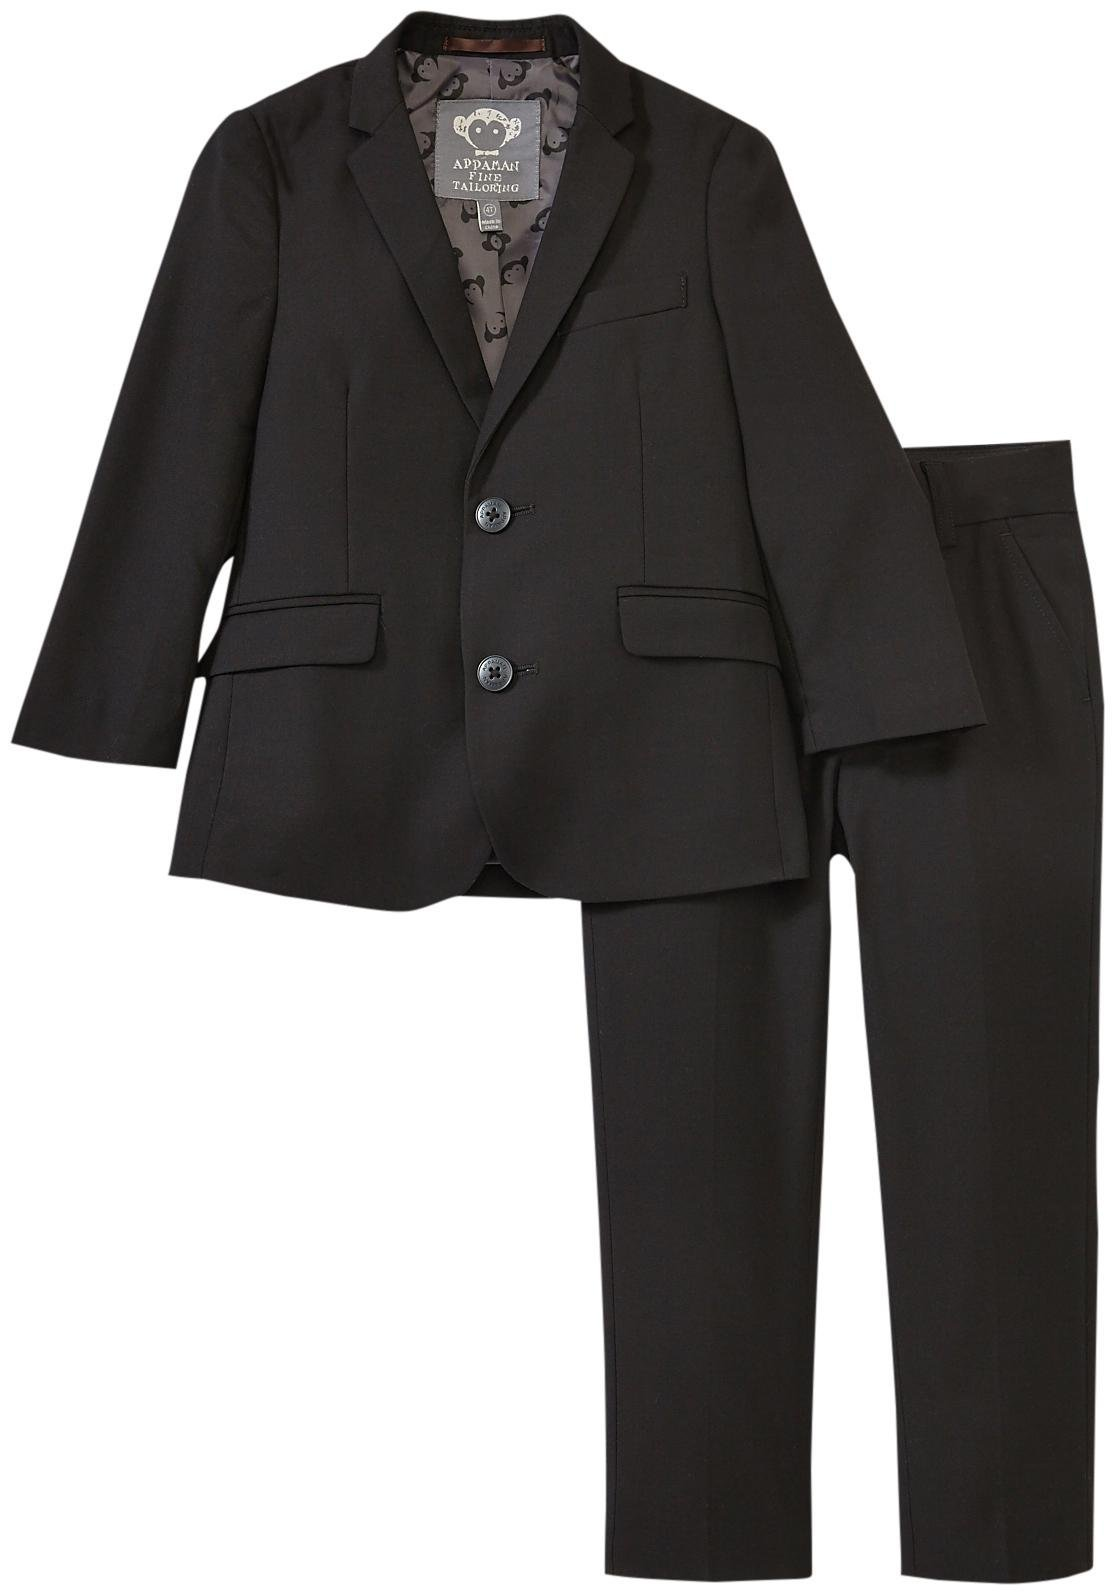 Appaman Little Boys' Two Piece Mod Suit, Black, 5 by Appaman